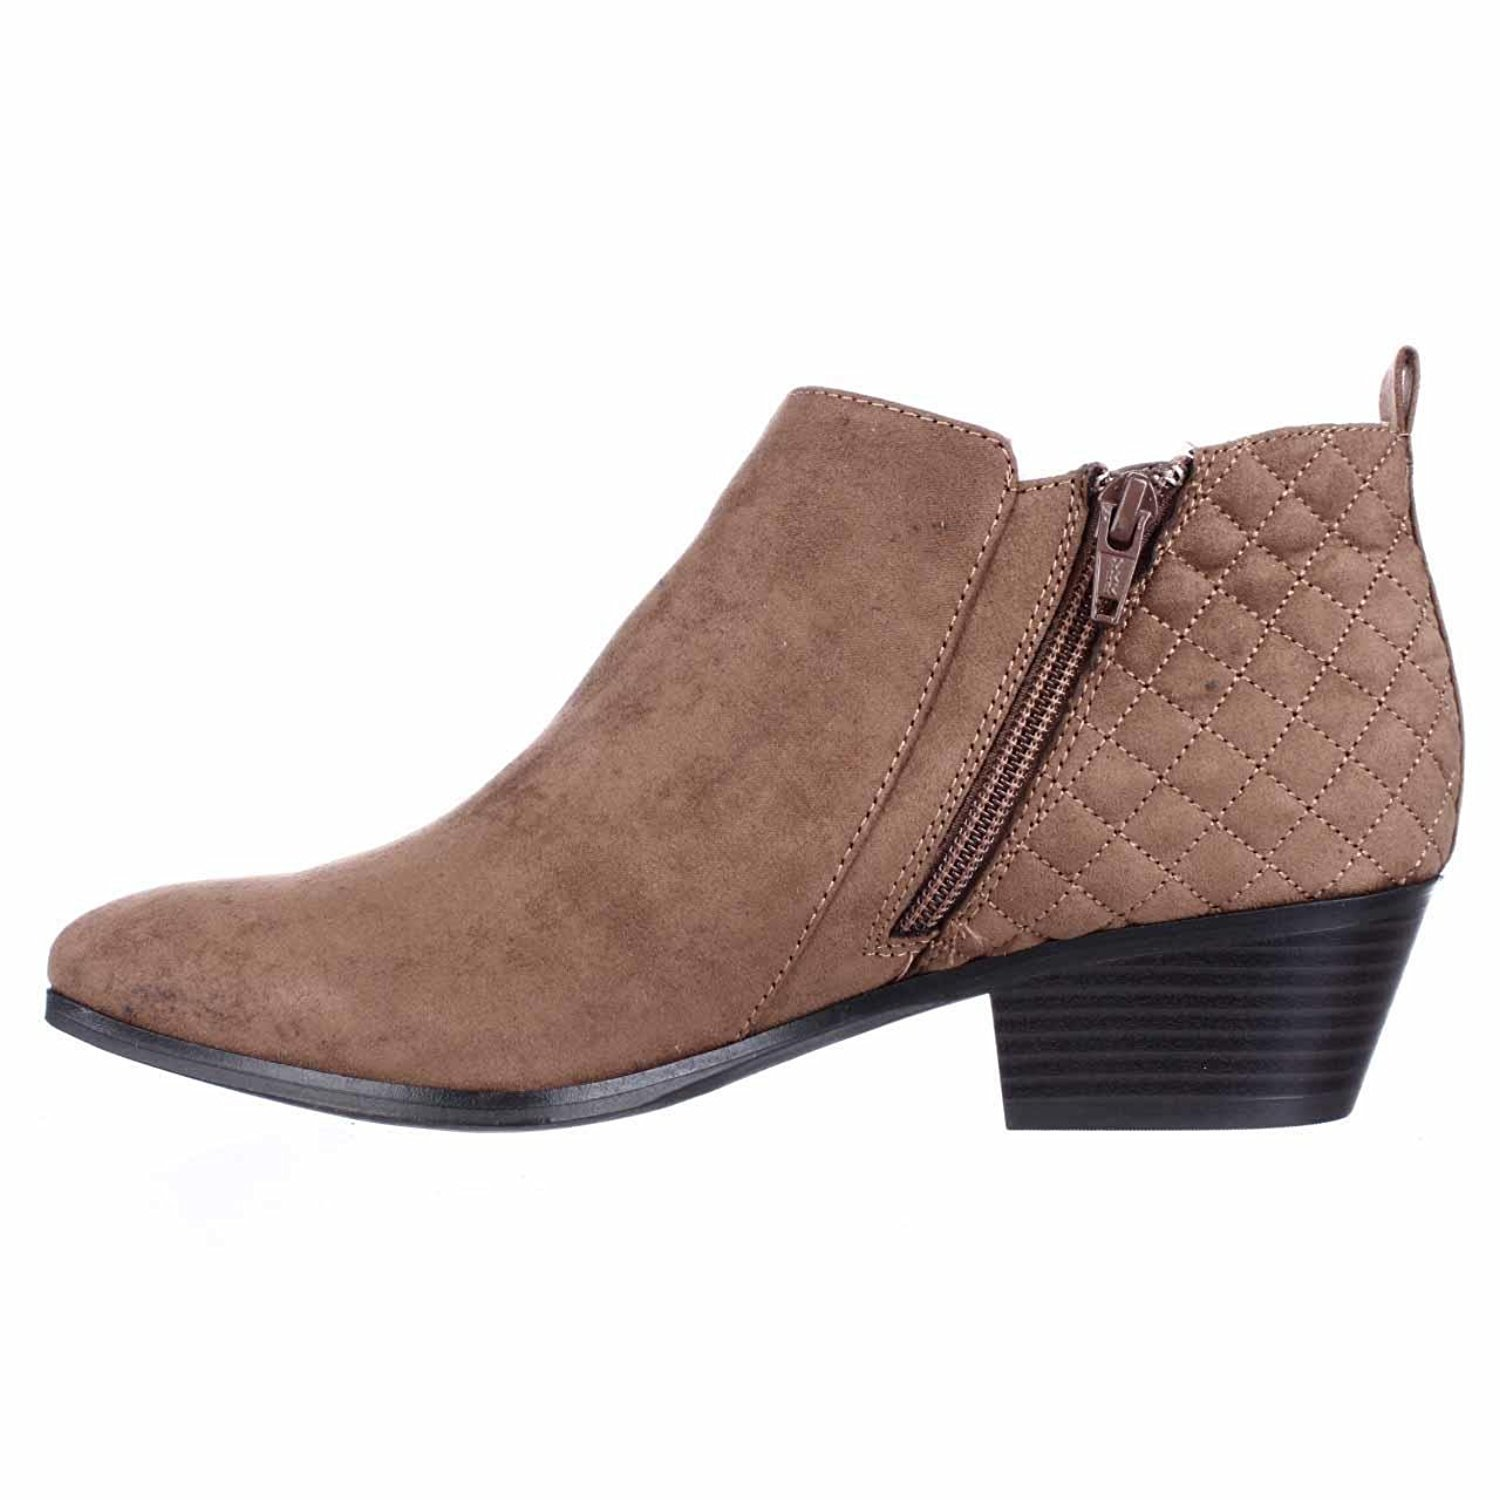 Style & Co. Womens Wessley Almond Toe Ankle Fashion Boots, Maple, Size 6.5